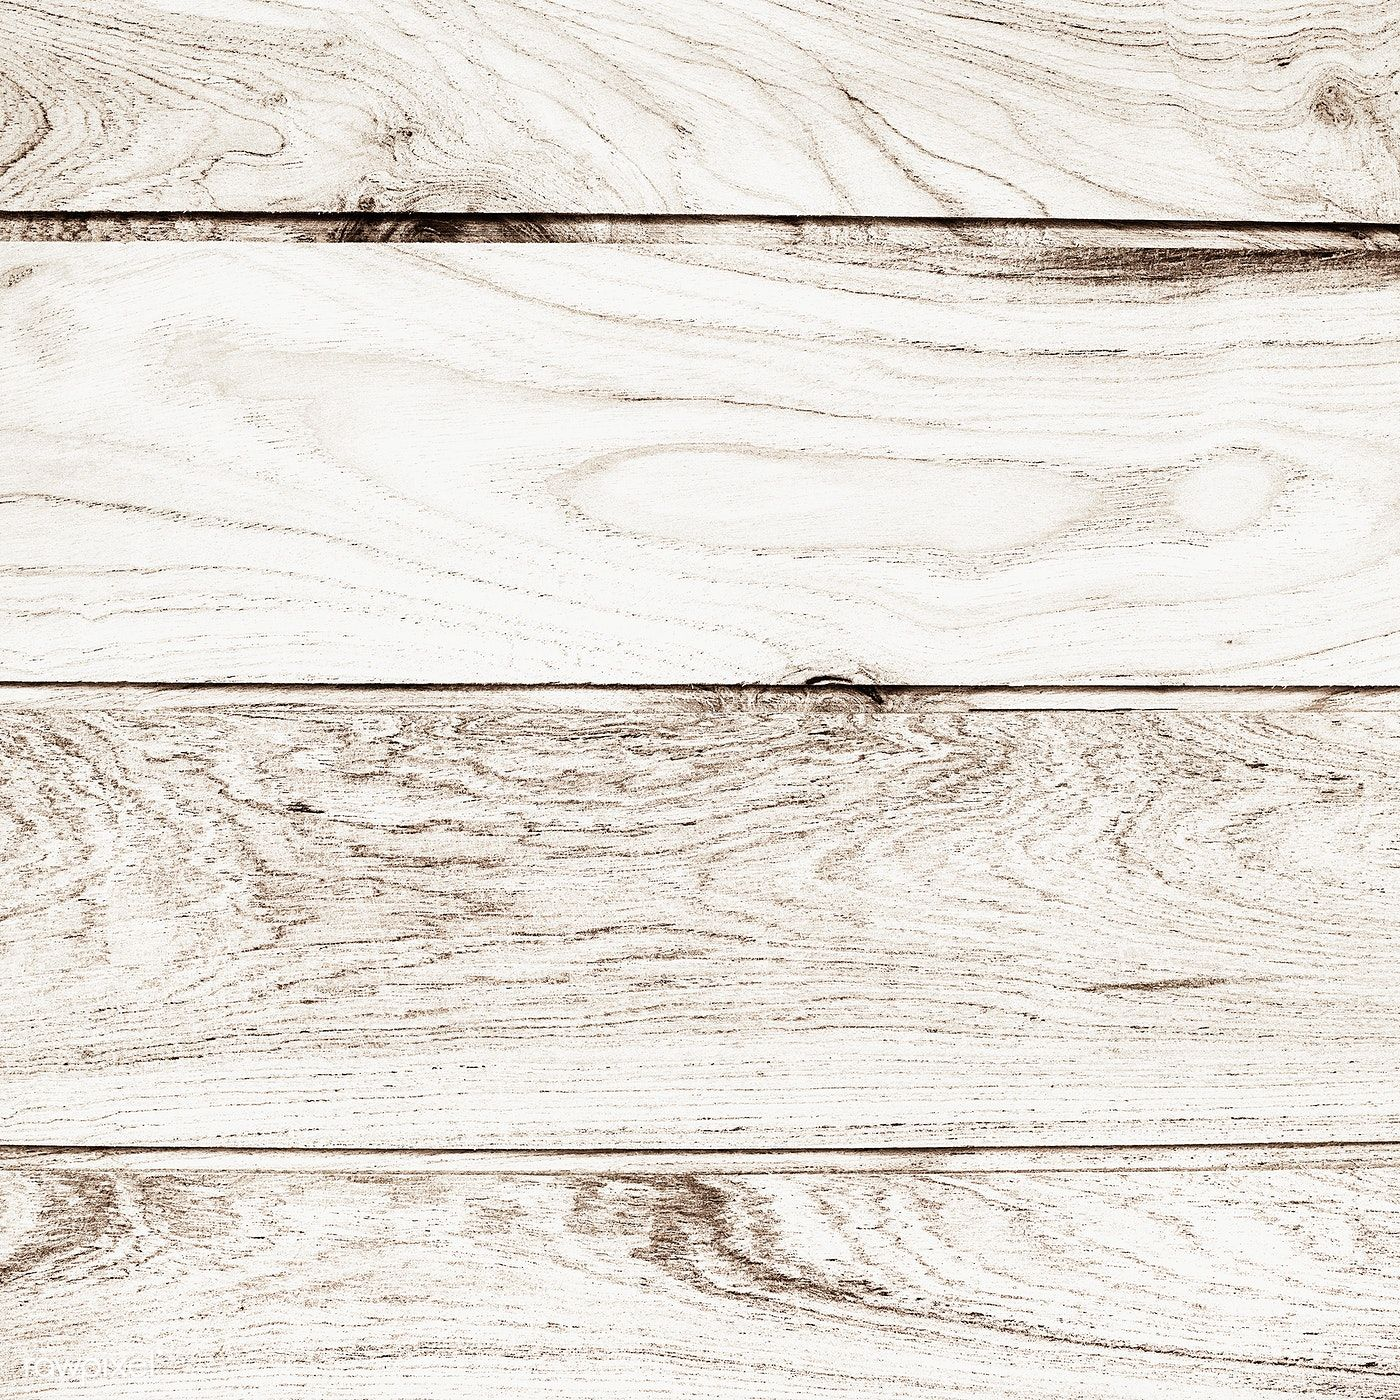 Plain Wooden Textured Design Background Transparent Png Free Image By Rawpixel Com Adj White Wood Texture Wood Wall Texture Black Wood Texture